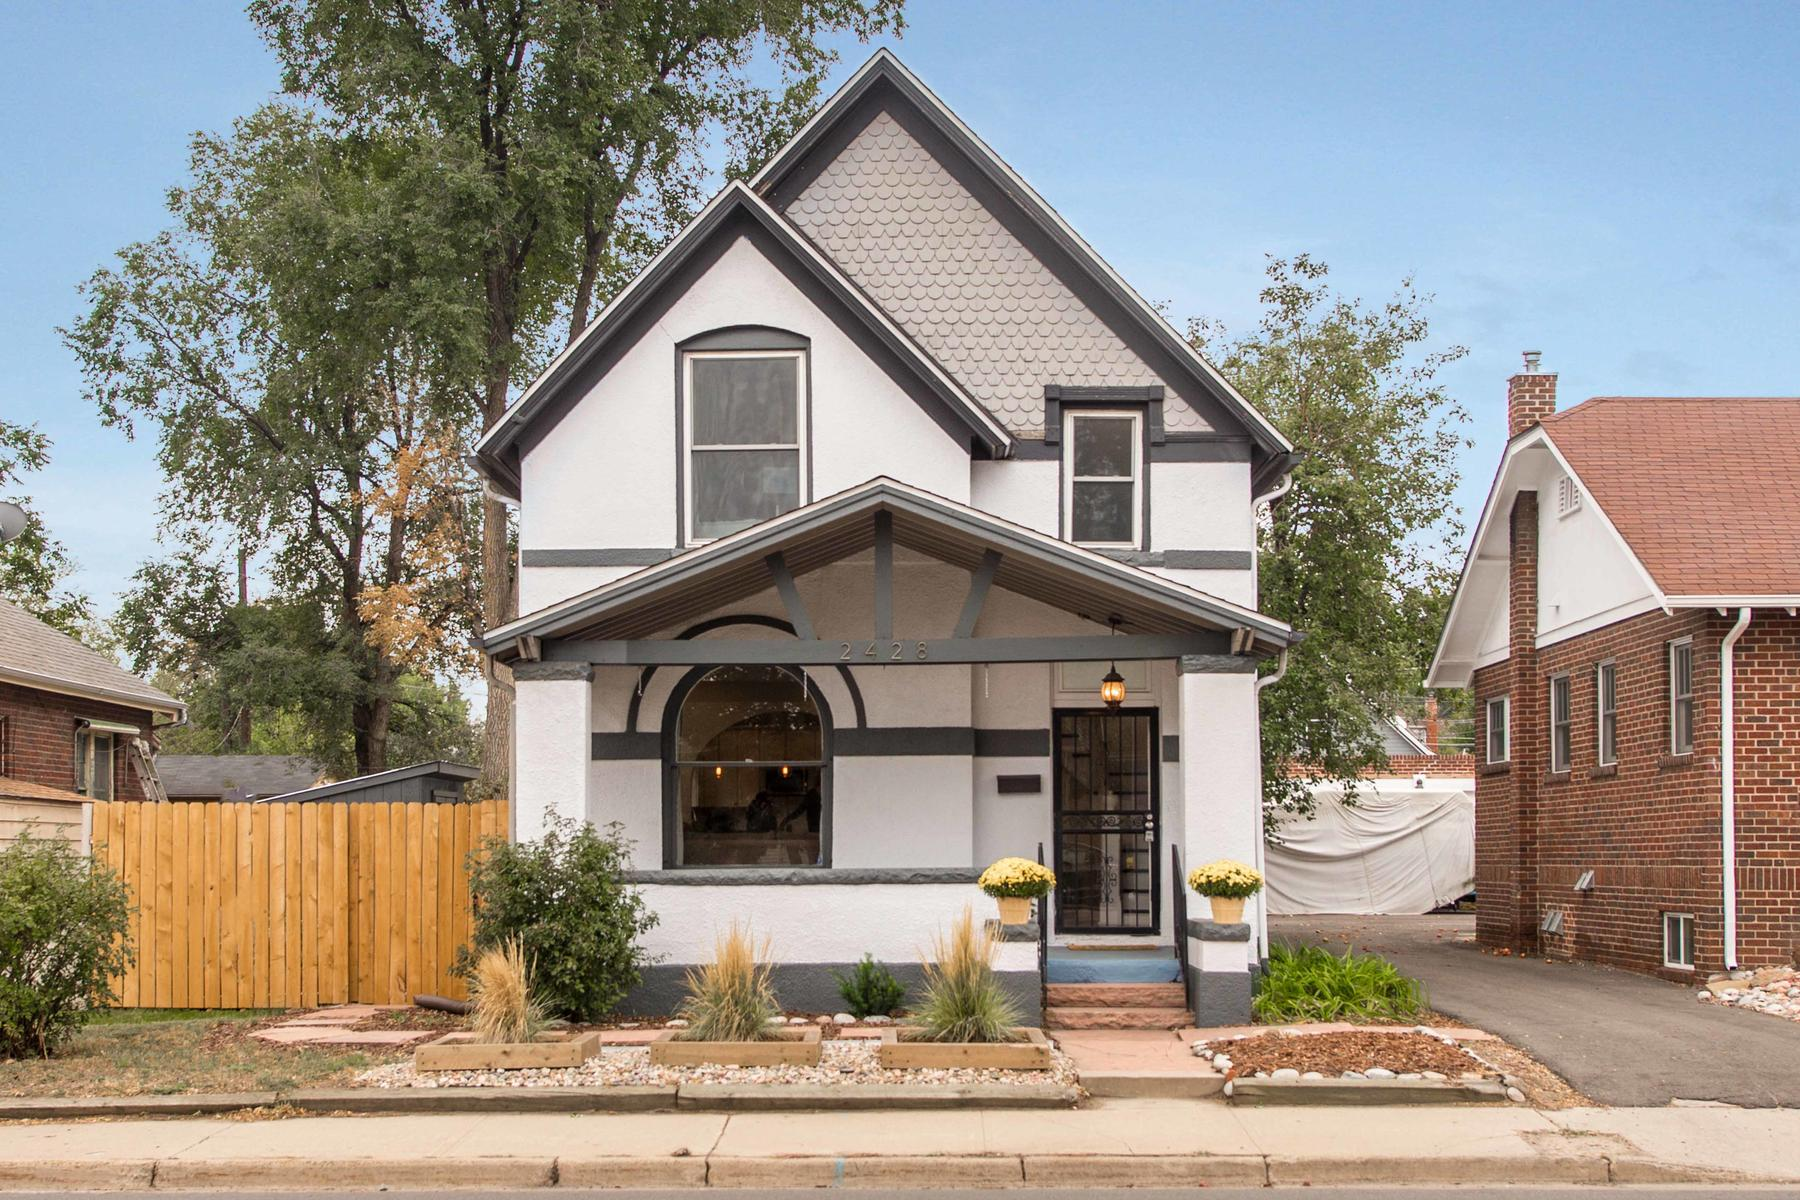 Property for Active at Urban Living With Vintage Sophistication 2428 W 38th Ave Denver, Colorado 80211 United States